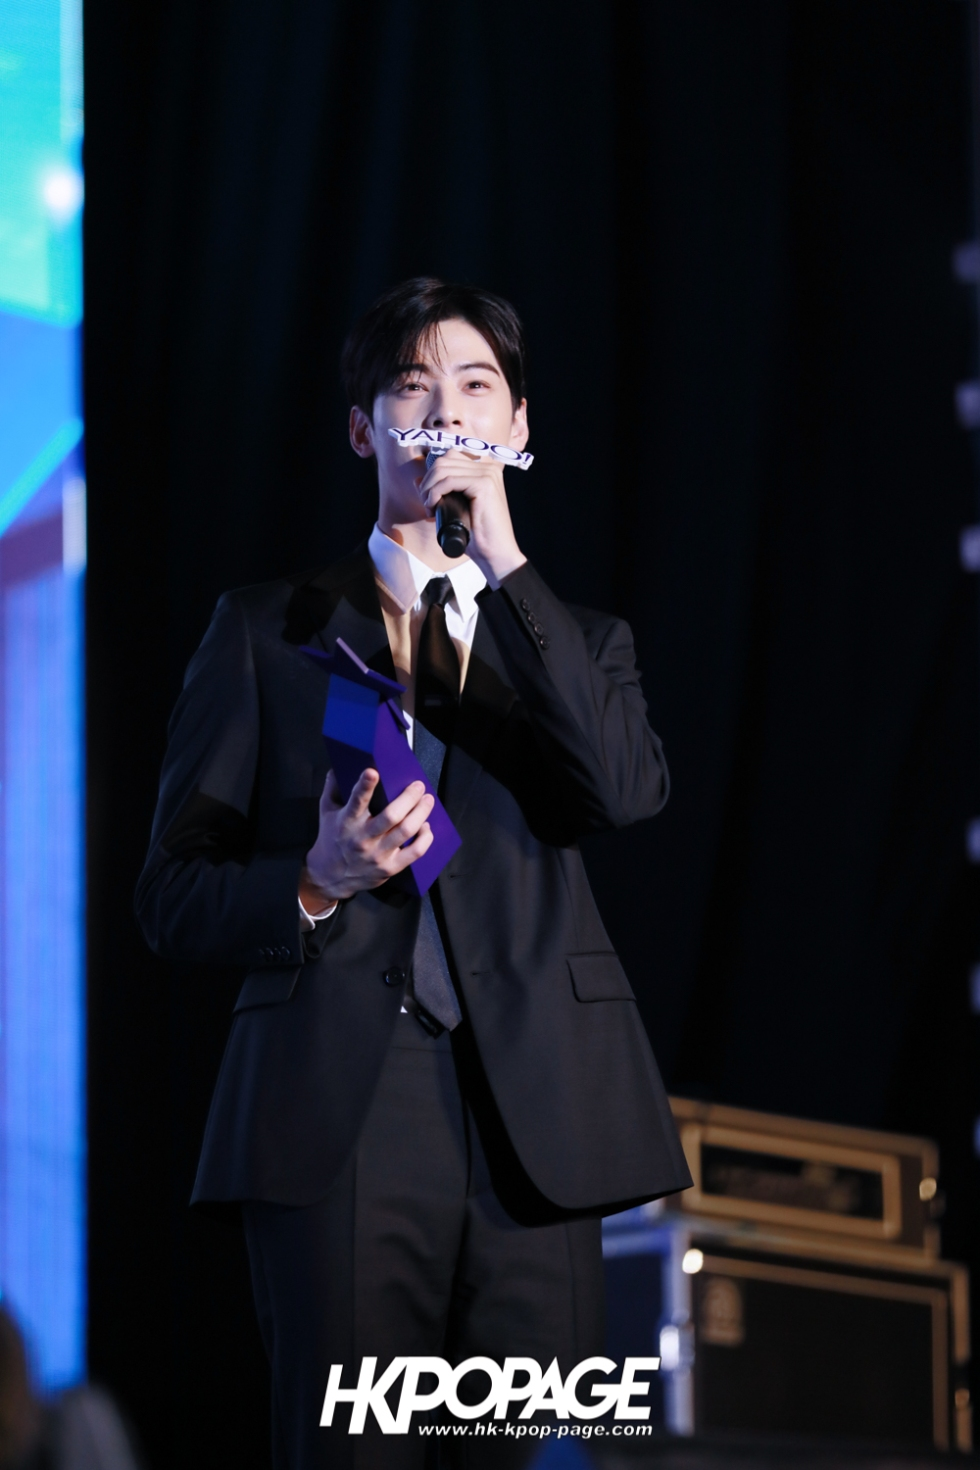 [HK.KPOP.PAGE] 181212_Cha Eun Woo_Yahoo Asia Buzz Awards 2018 presentation ceremony_-21